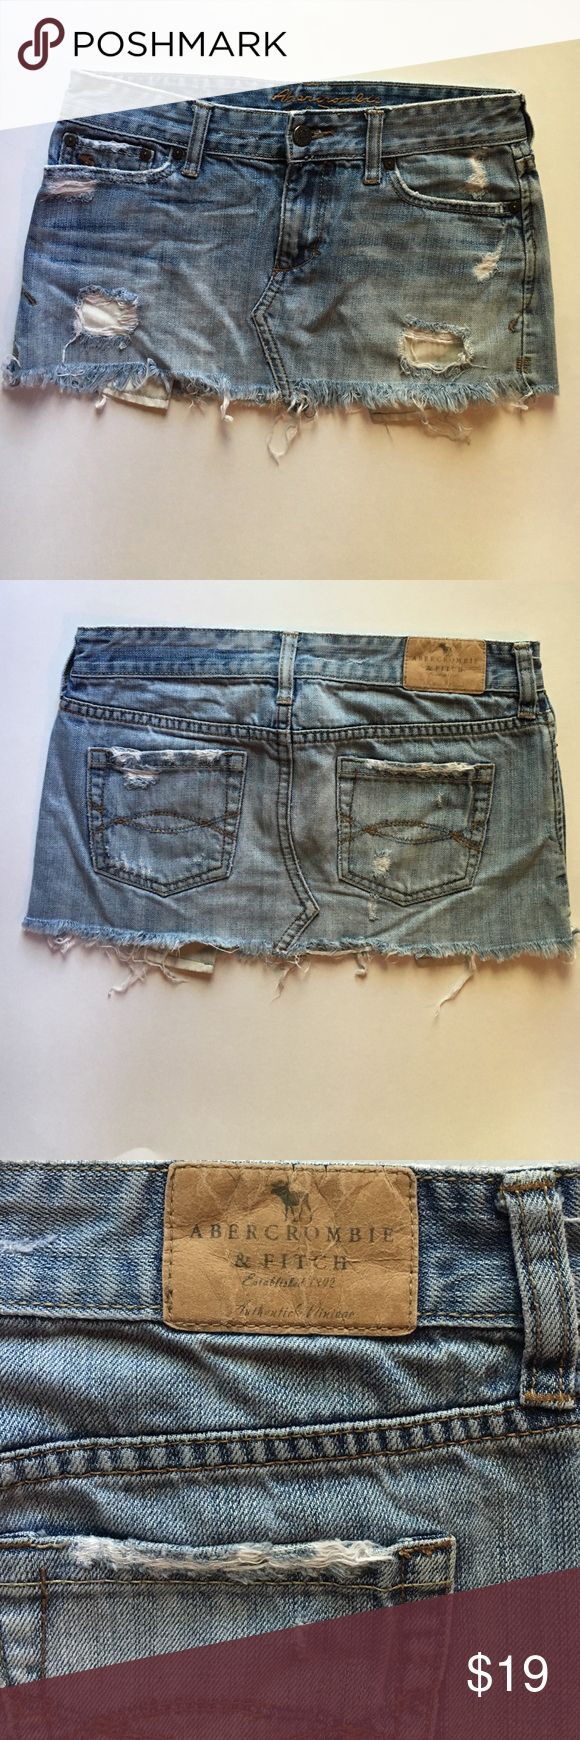 Abercrombie distressed jean skirt Abercrombie & Fitch Jean Skirt, distressed, size 00 Abercrombie & Fitch Skirts